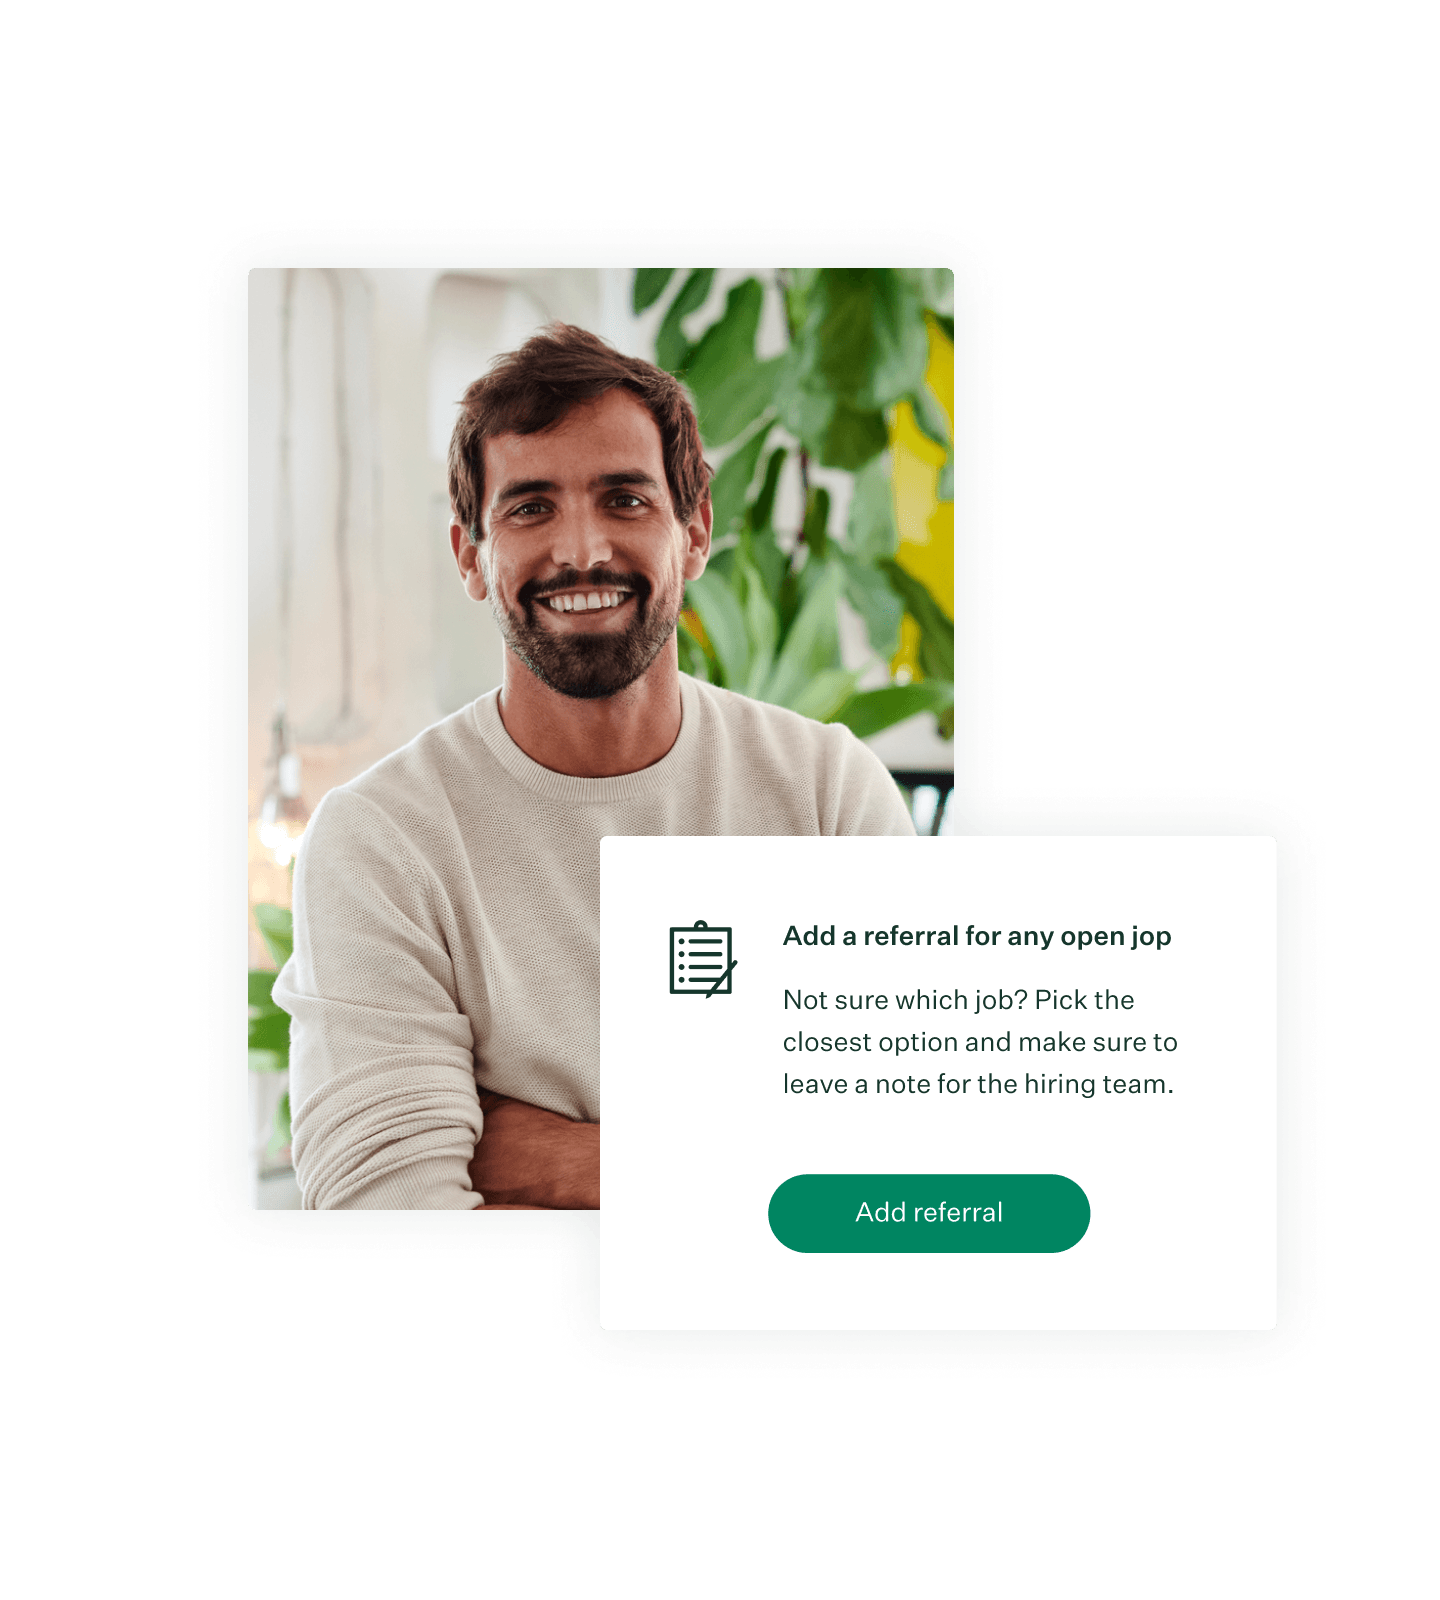 Image with a photo of a man and job referral example